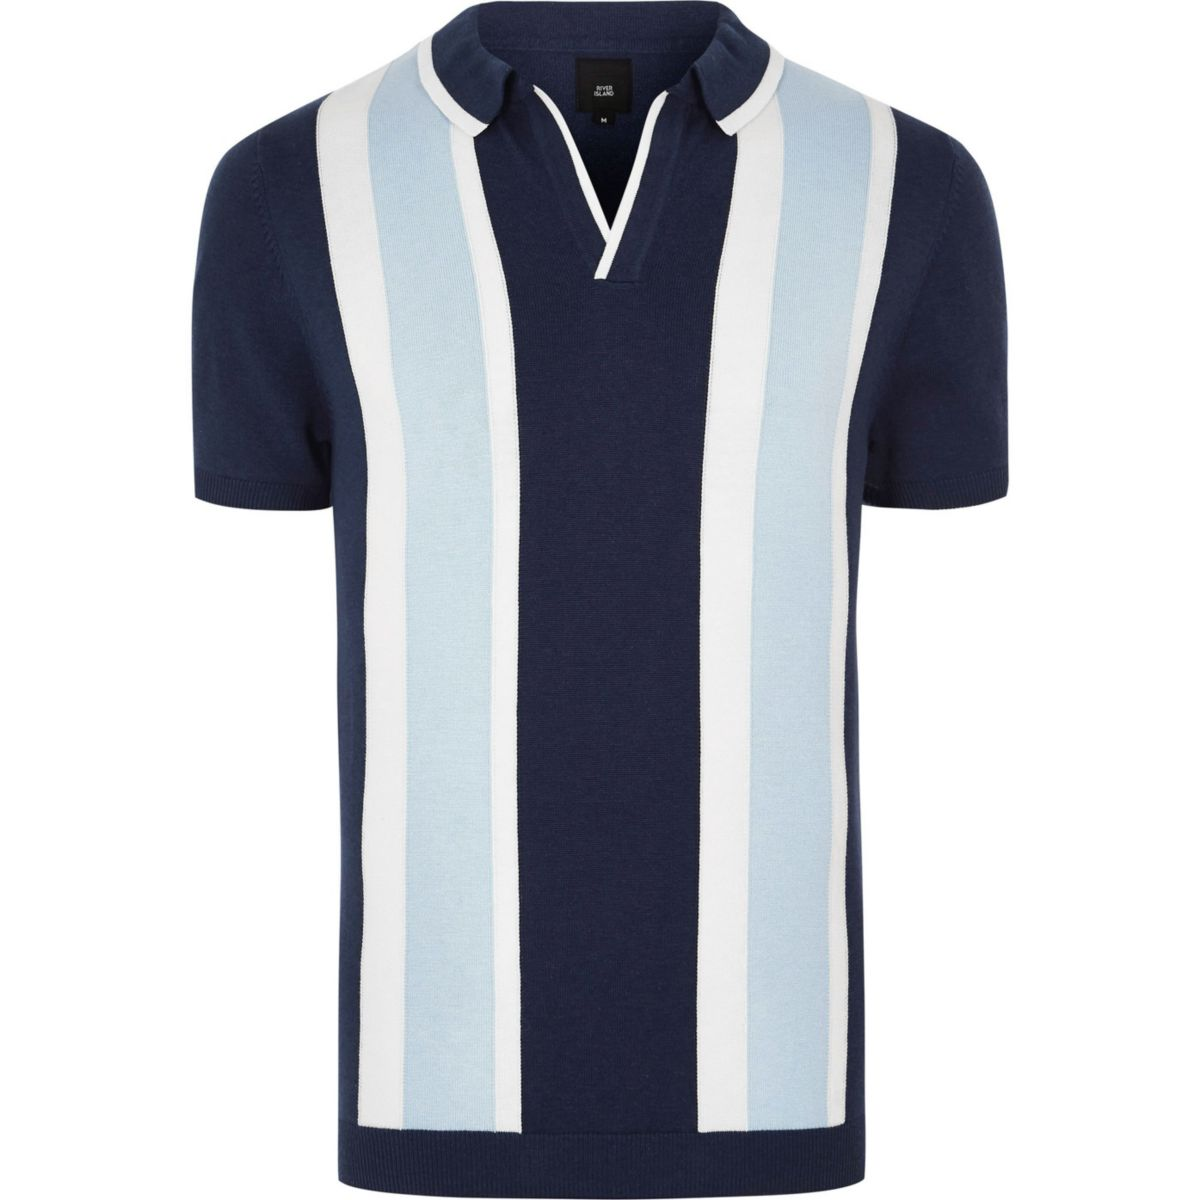 Big & tall blue stripe revere knit polo shirt